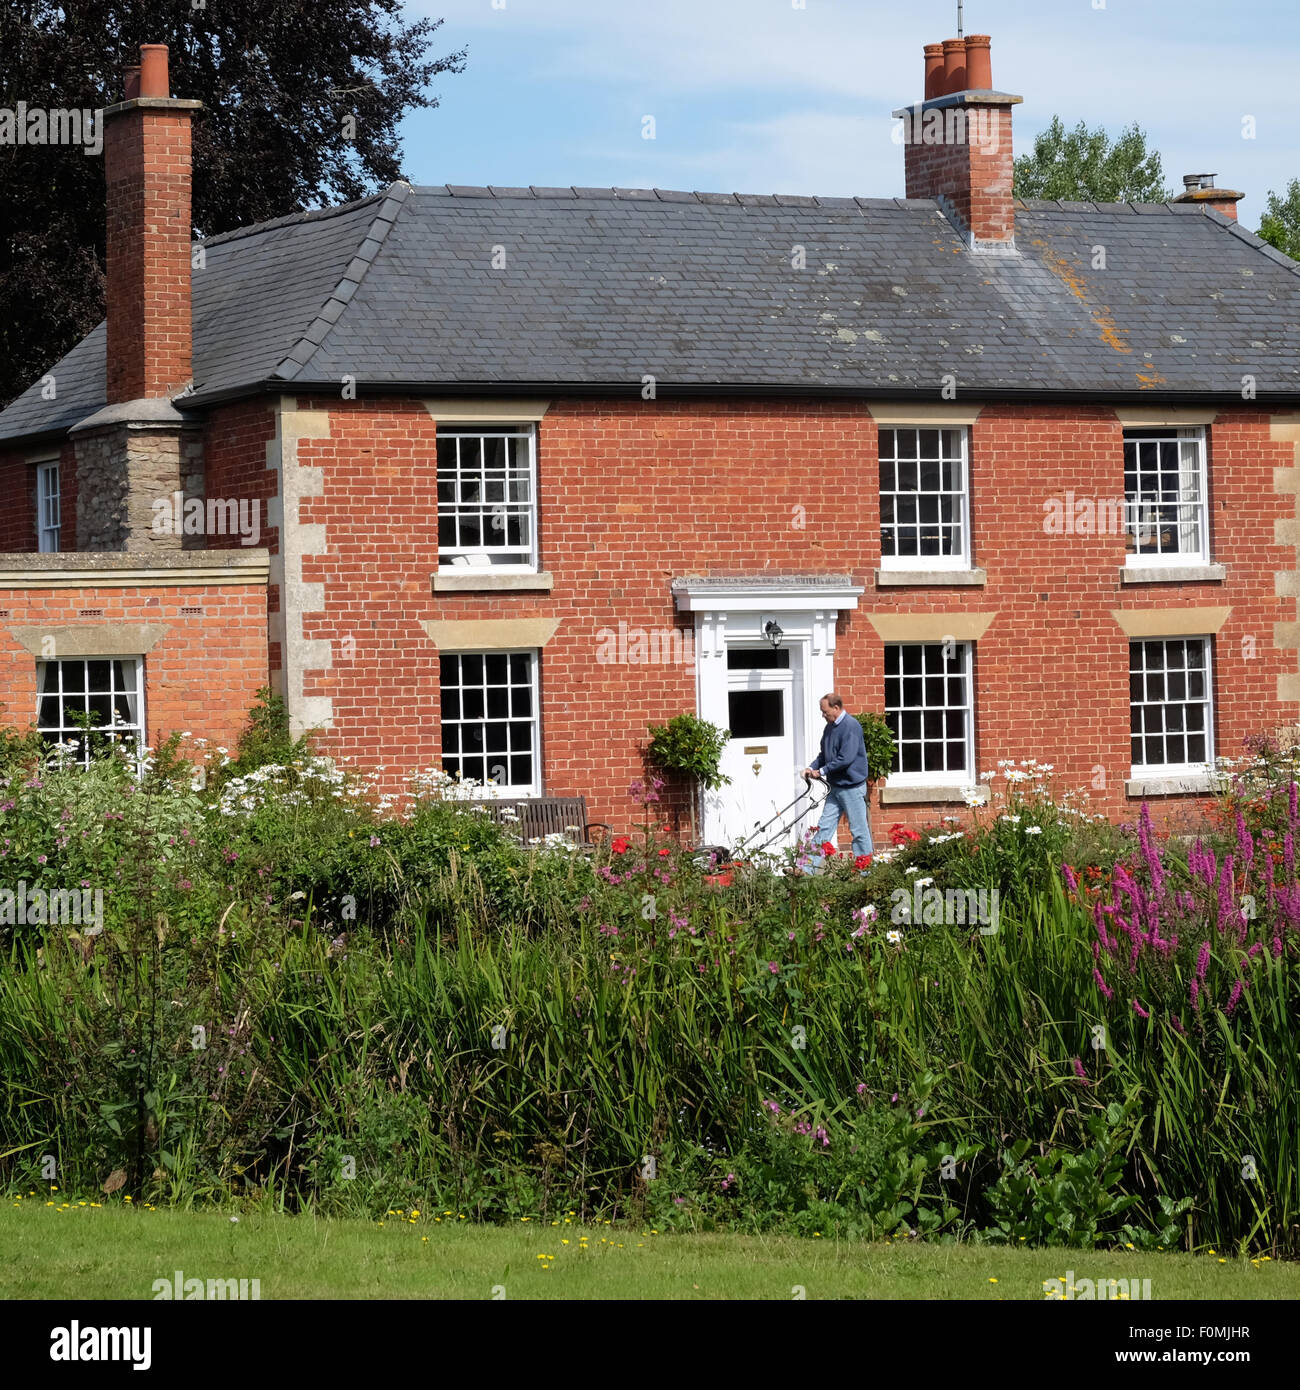 Eardisland Herefordshire man cutting lawn grass in elegant old red brick property UK - Stock Image